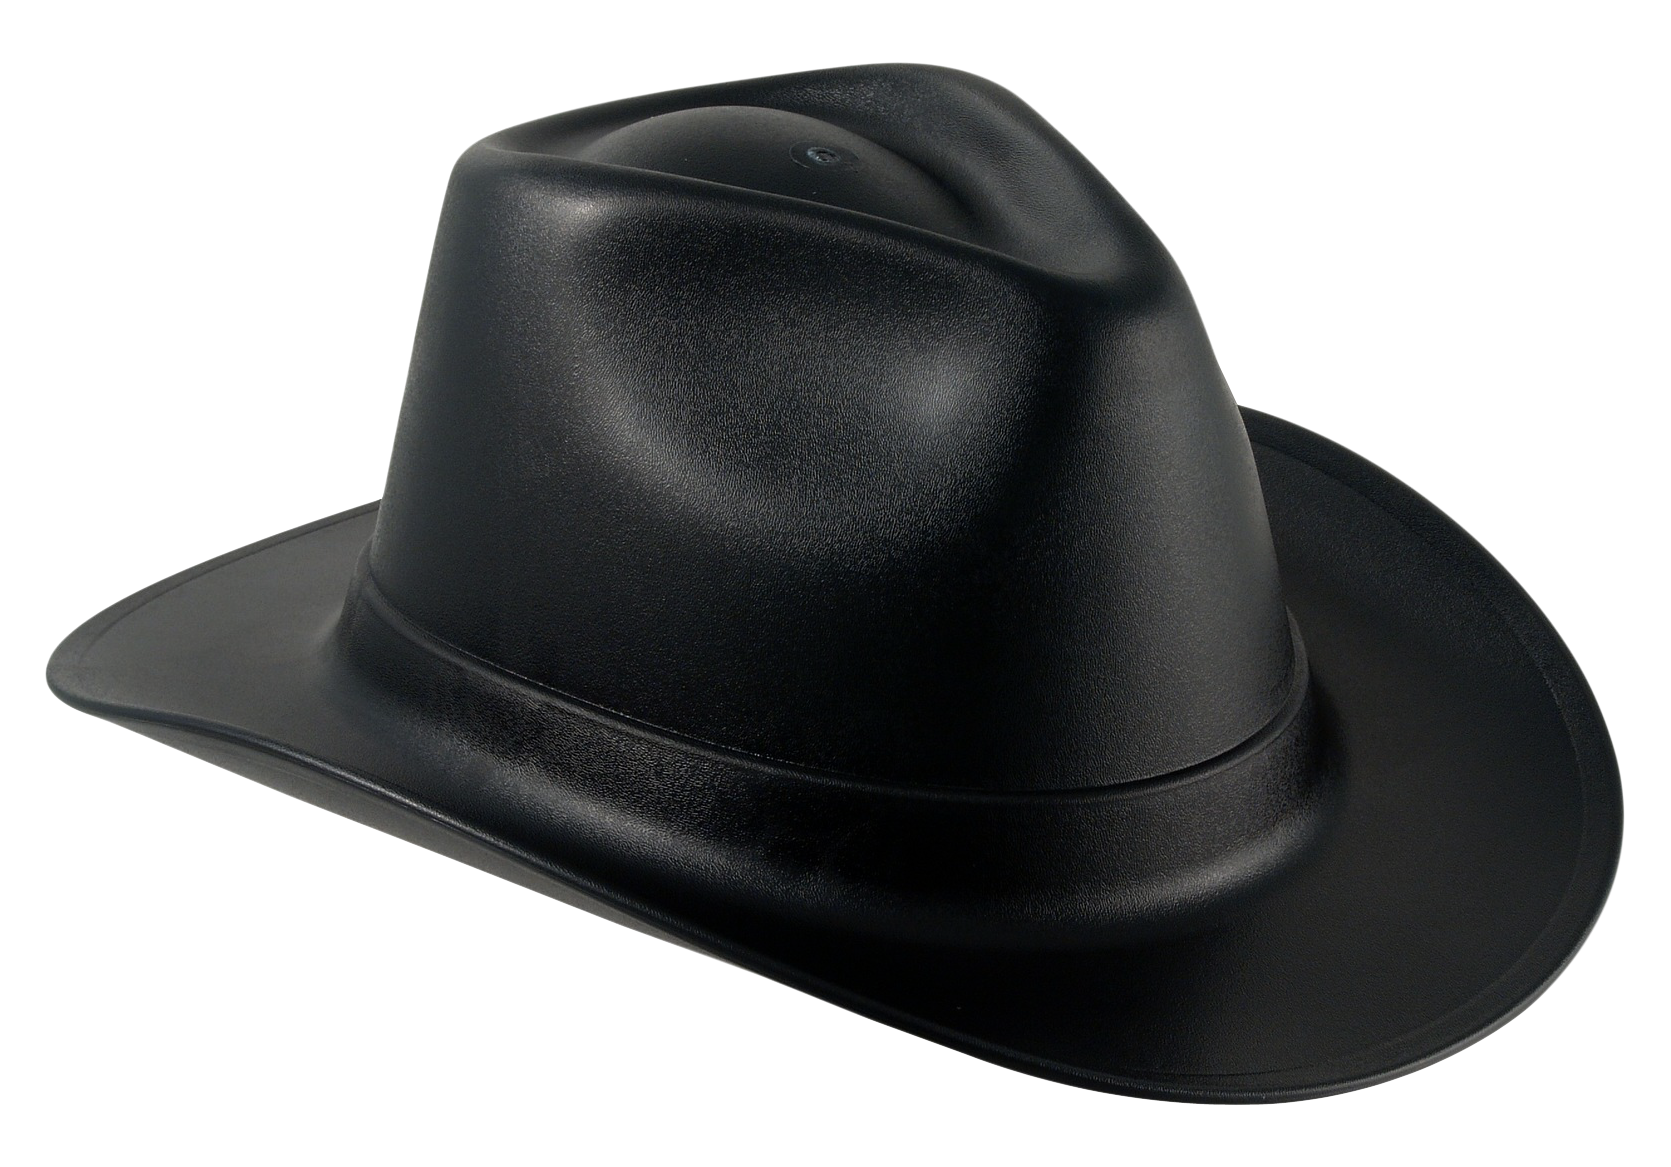 Download Cowboy Hat Png Image For Free Straw hat stetson cowboy hat resistol, hat, hat, cowboy, top hat png. download cowboy hat png image for free